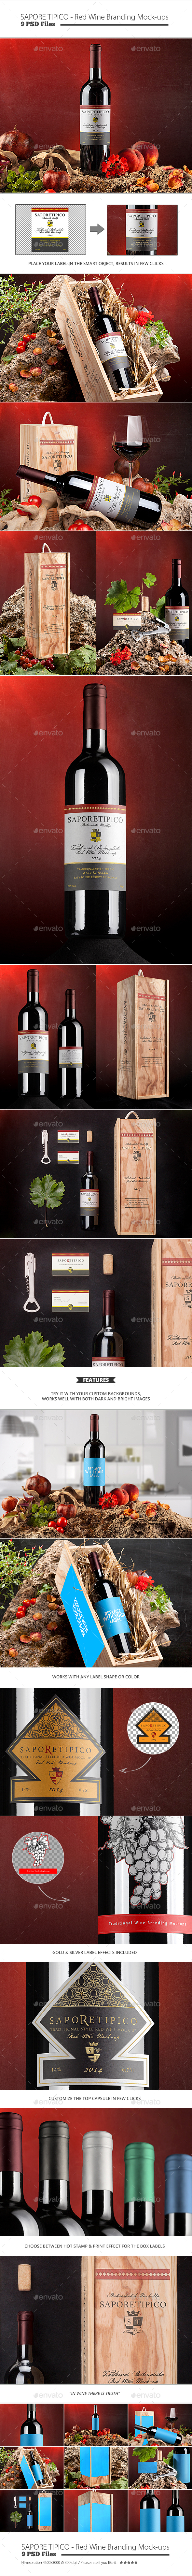 Sapore Tipico - Red Wine Branding Mock-ups - Food and Drink Packaging